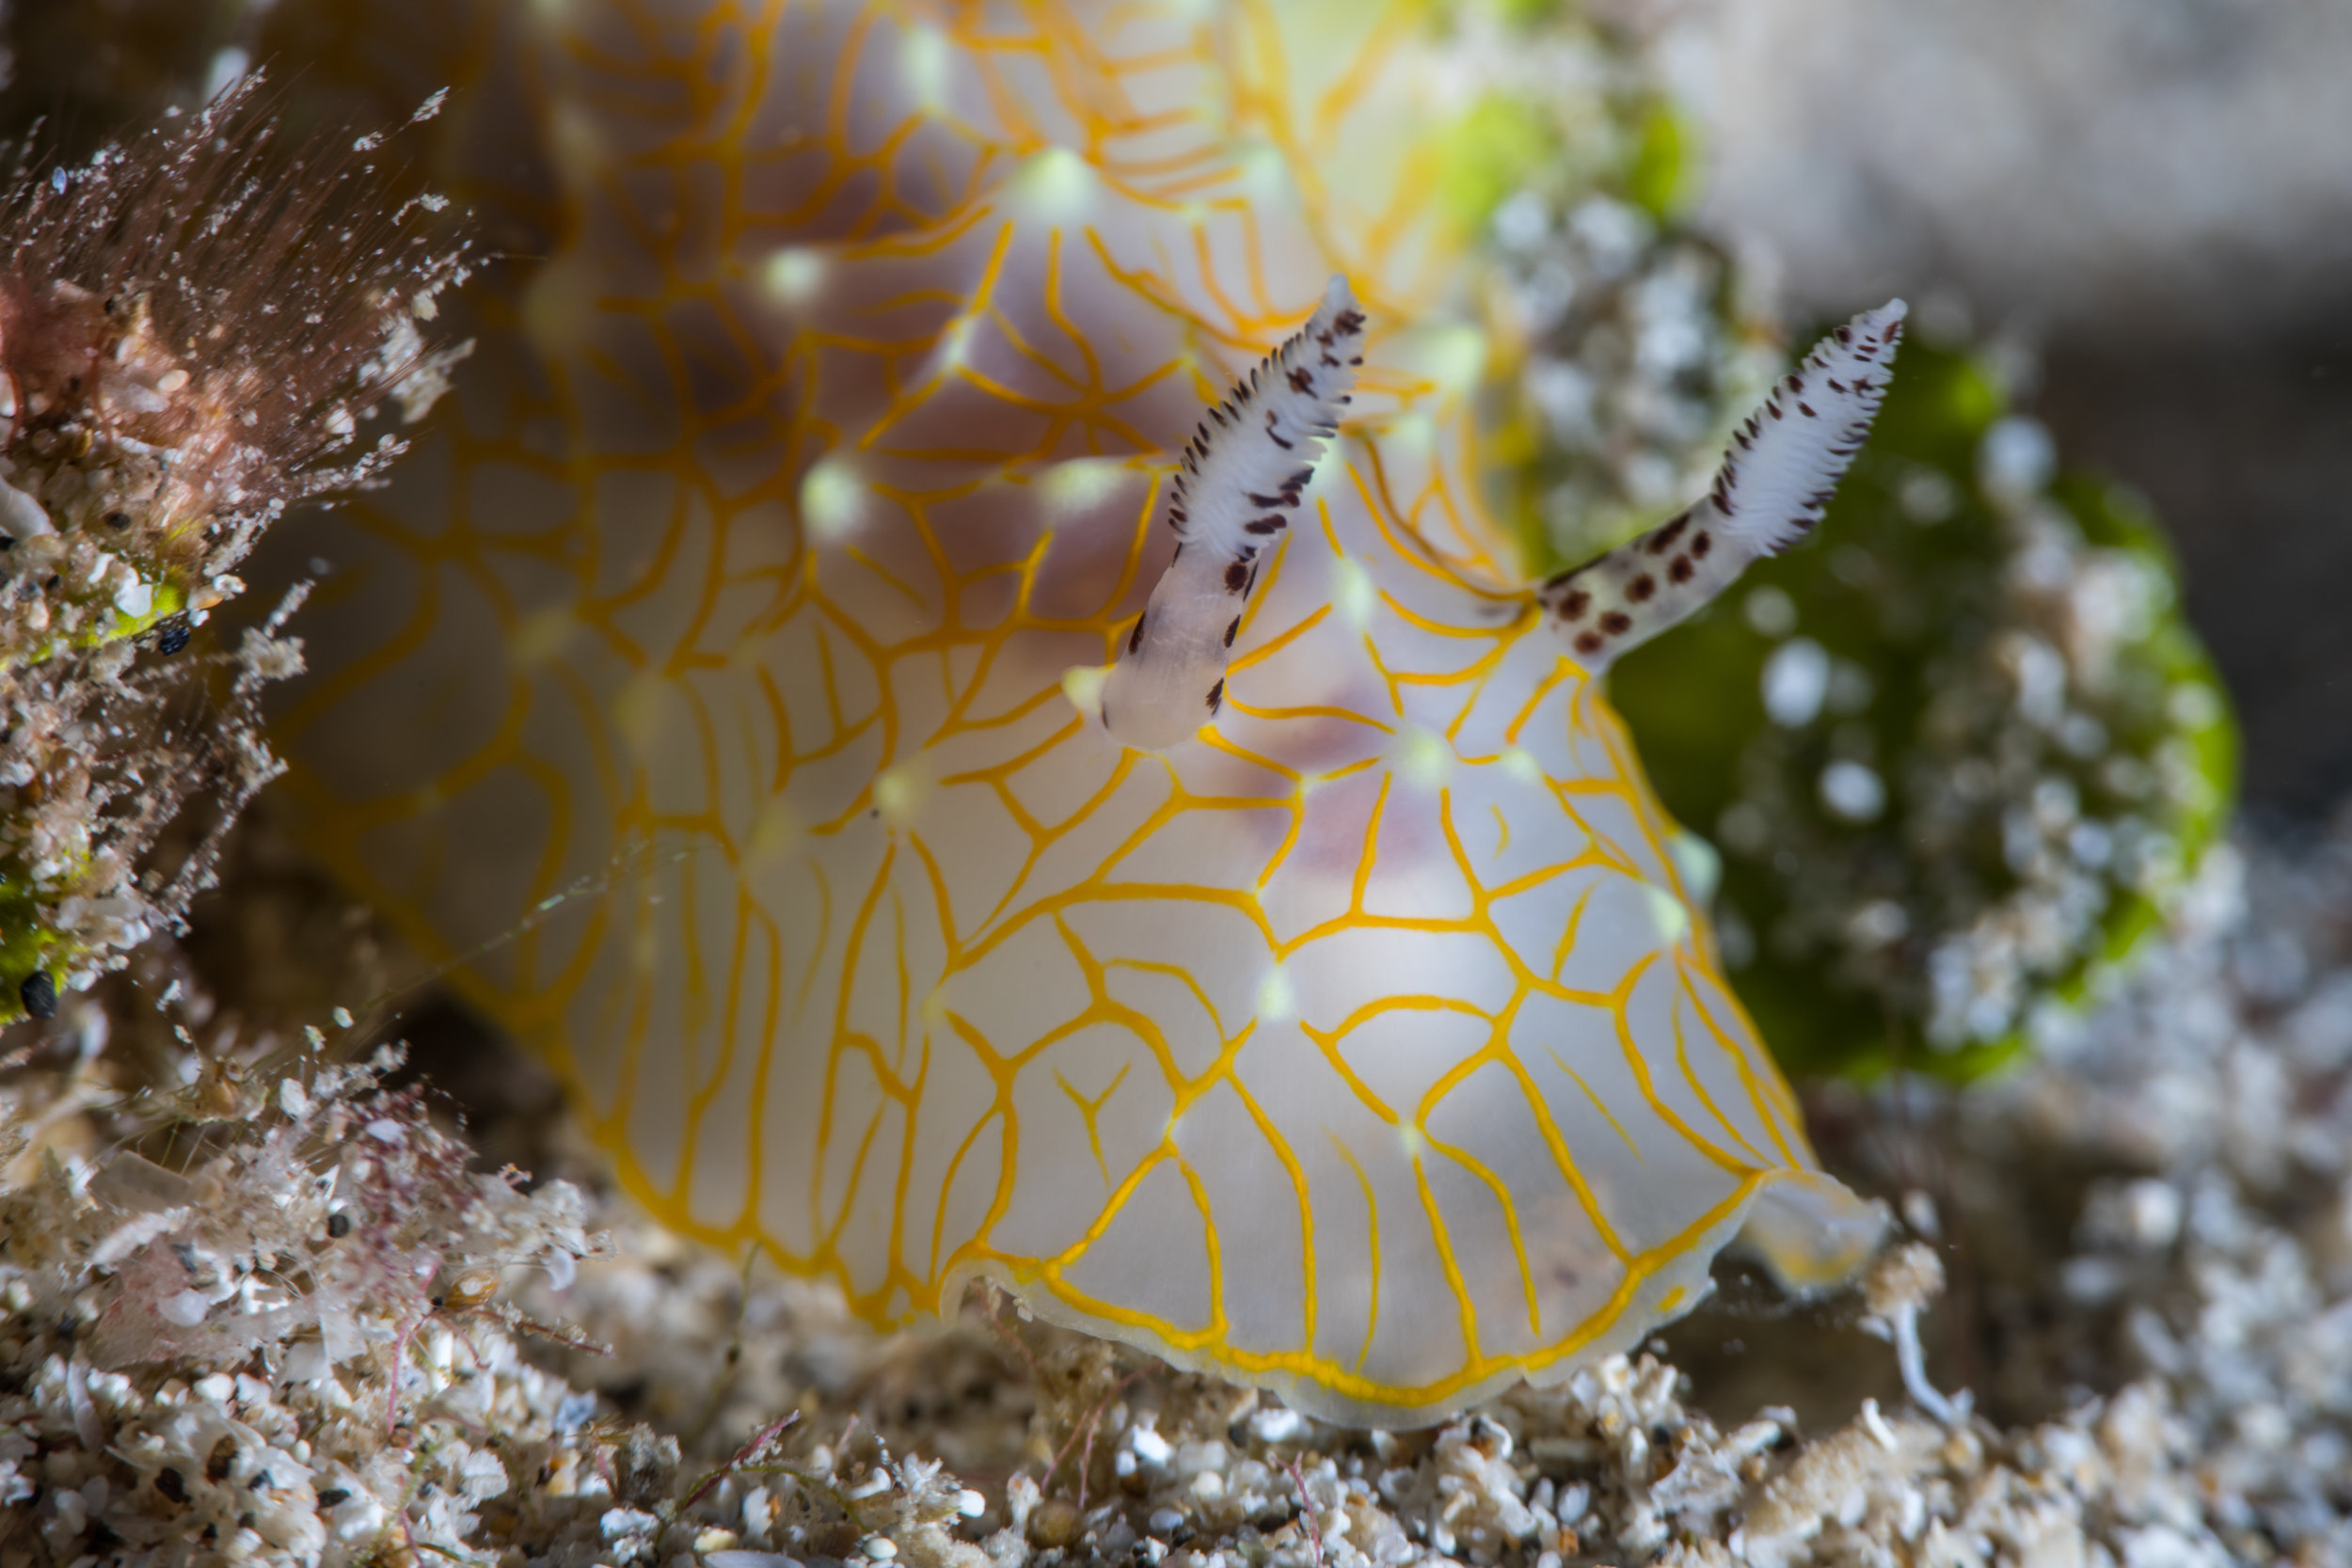 NUDIBRANCH CREDIT: KIMBERLY JEFFERIES / coral reef image bank